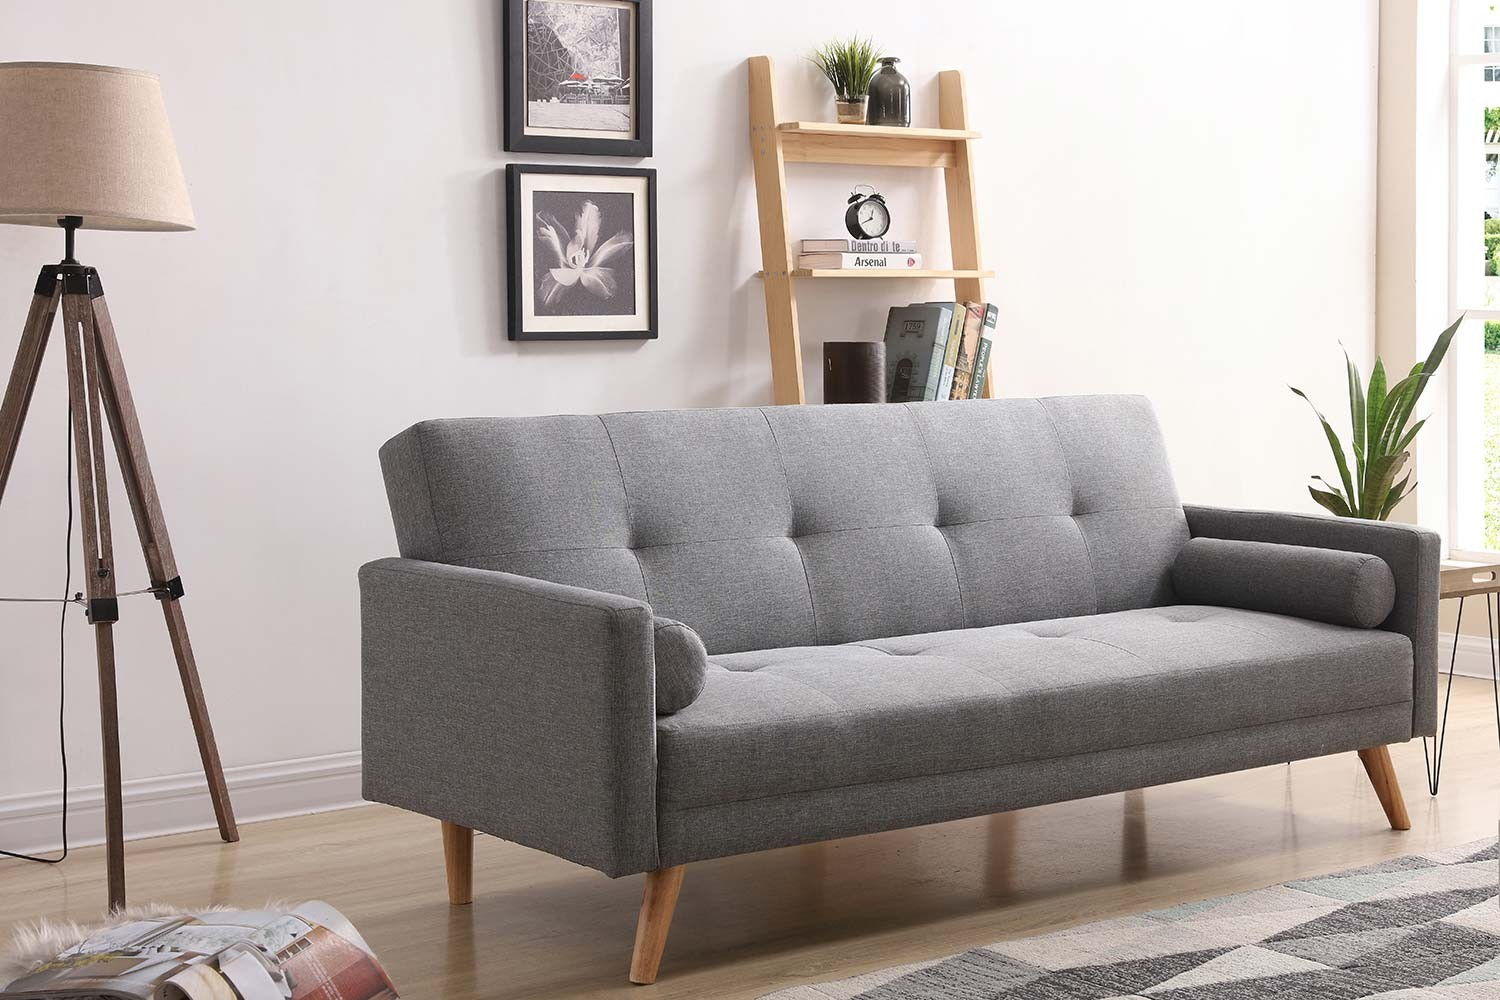 Canapé convertible scandinave 3 places gris Wooden